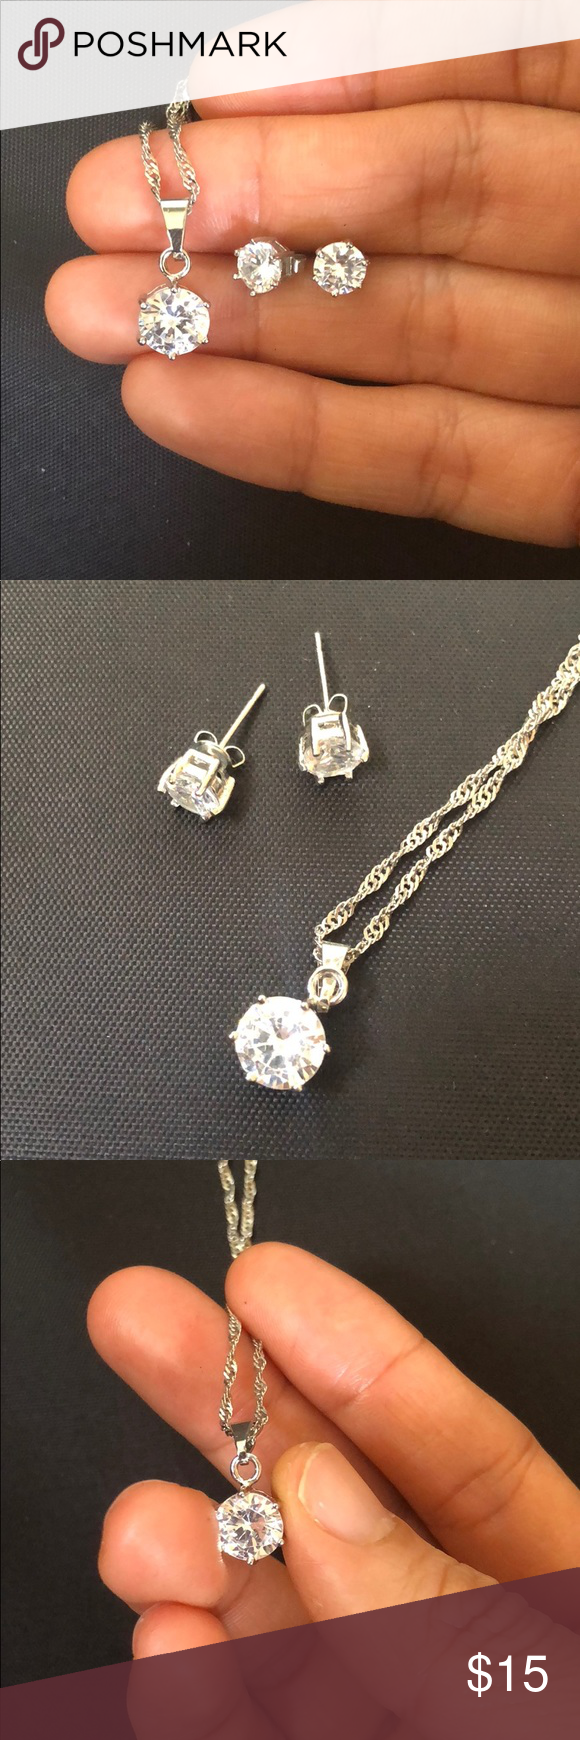 Set of necklace cz pendant and stud earrings in my posh